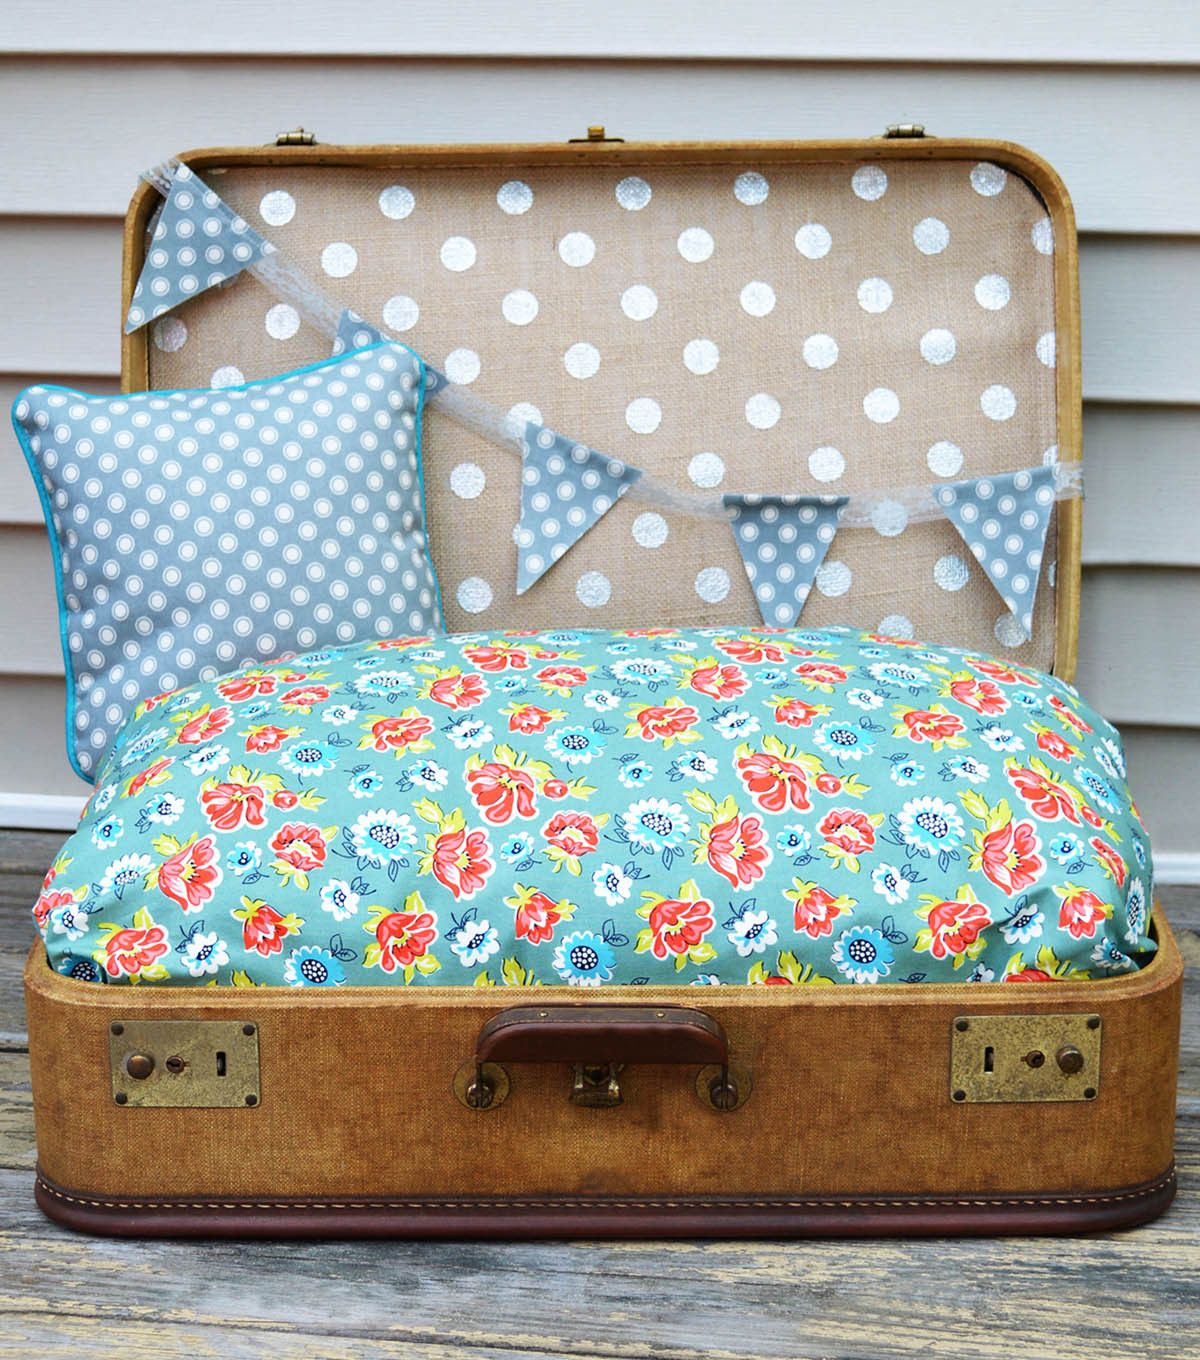 Love to travel with your dog?  This traveling pet bed is such a cute idea for a bed on the go!